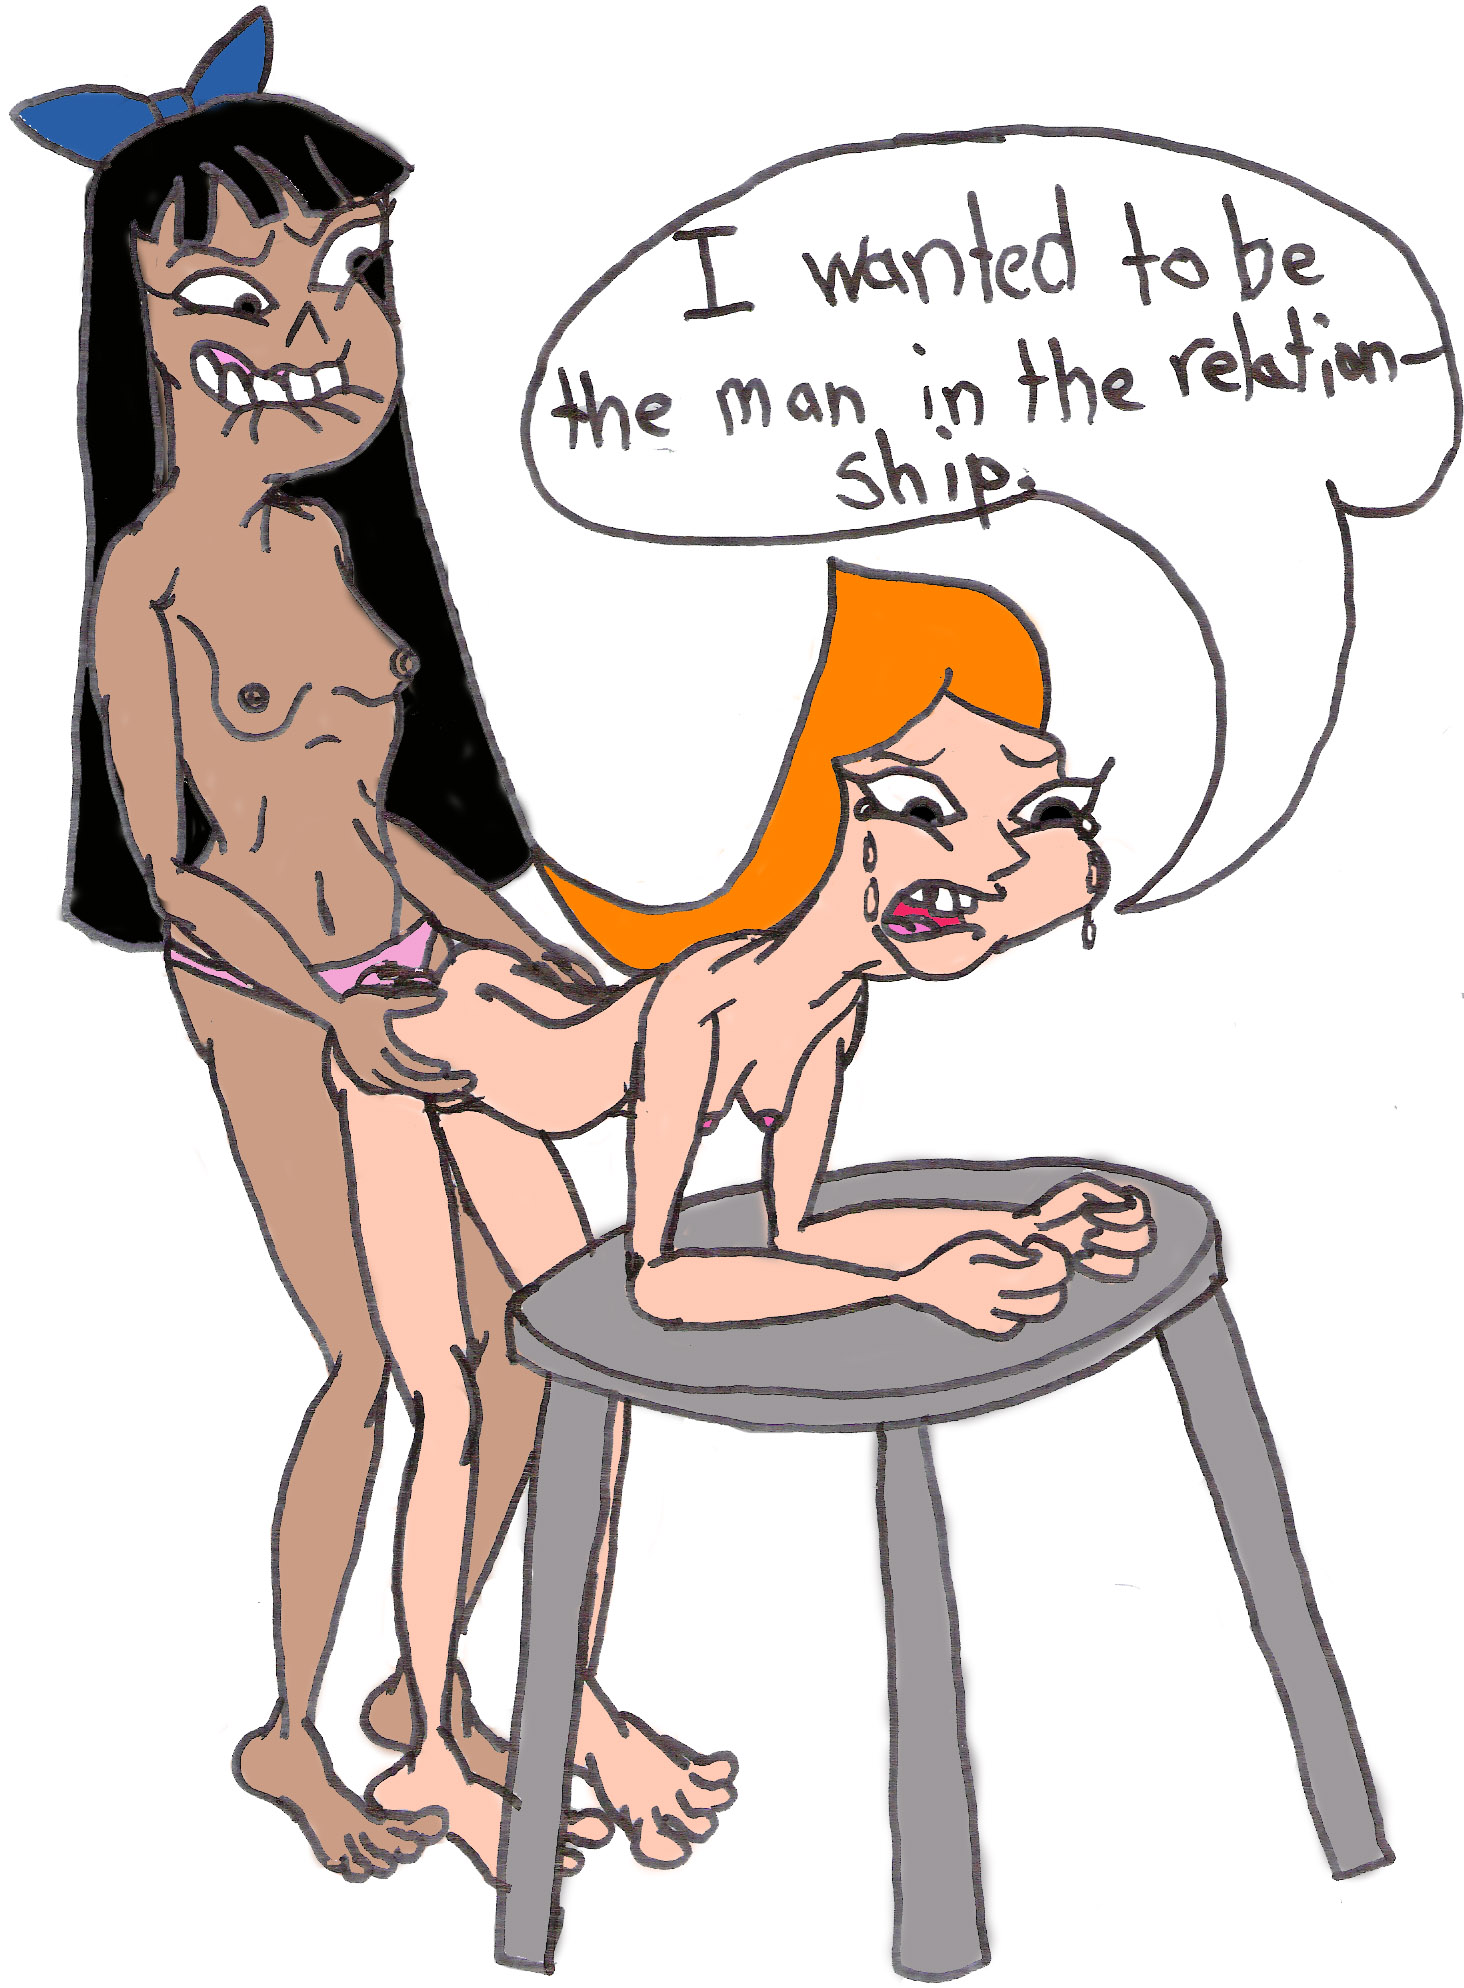 Sexy naked phineas and ferb candace simply matchless